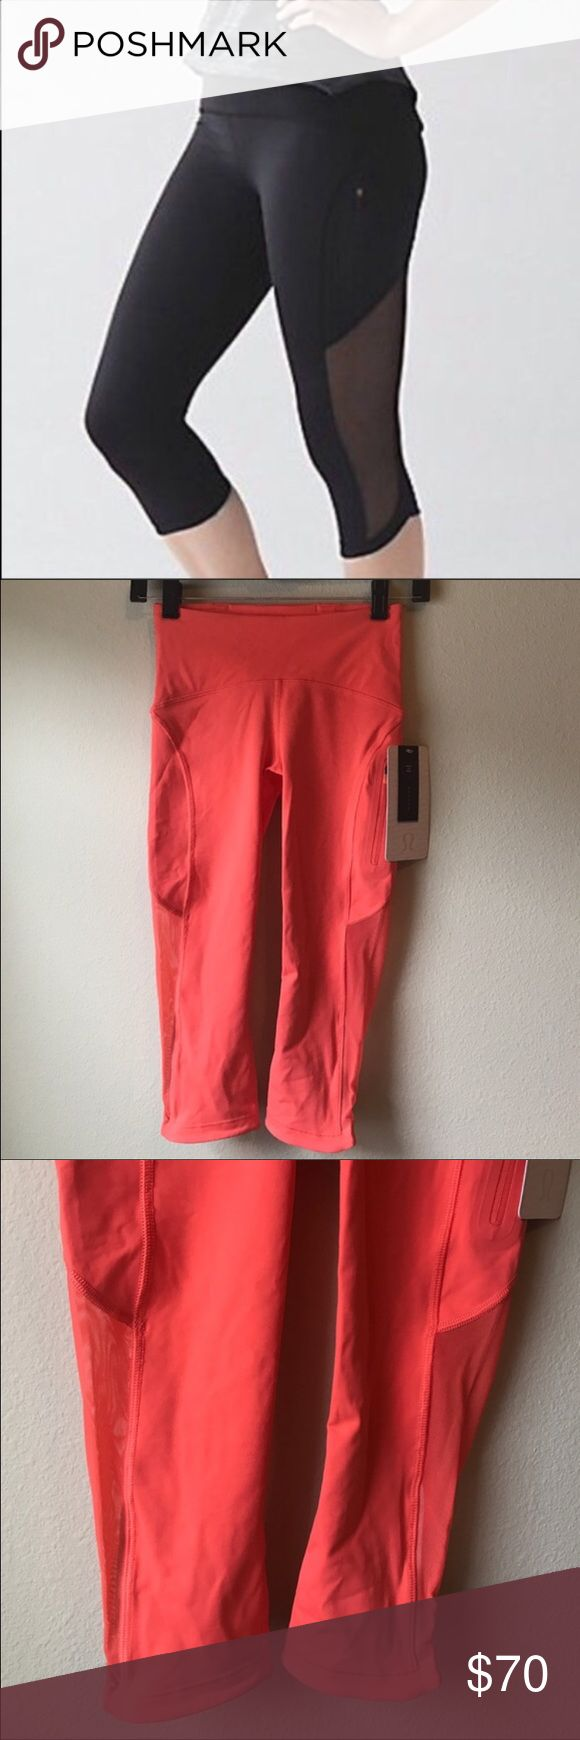 NWT LULULEMON SUN RUNNER CROP -- Size 4 Brand: Lululemon Athletic Sun Runner Crop Mesh | Cape orange > Black photo is stock photo only  Condition: New with tag | Size 4 ||    🚩NO TRADES  🚩NO LOWBALL OFFERS  🚩NO RUDE COMMENTS  🚩NO MODELING  ☀️Please don't discuss prices in the comment box. Make a reasonable offer and I'll either counter, accept or decline.   I will try to respond to all inquiries in a timely manner. Please check out the rest of my closet, I have various brands. lululemon…